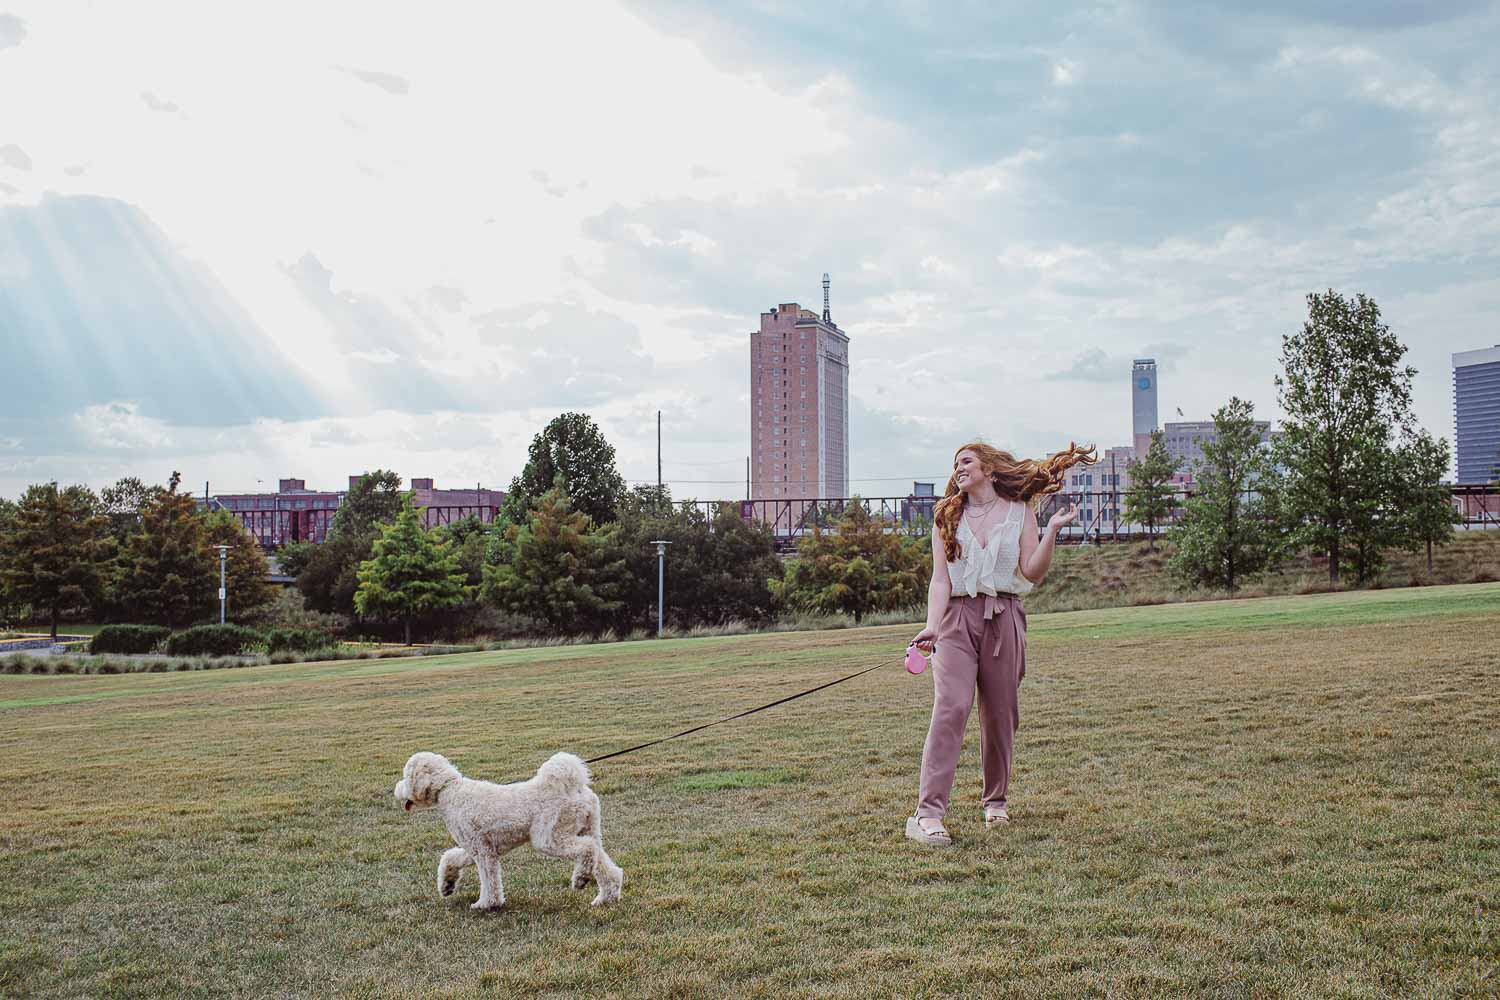 Birmingham Alabama senior portraits at Railroad Park by David A. Smith of DSmithImages Wedding Photography, Portraits, and Events